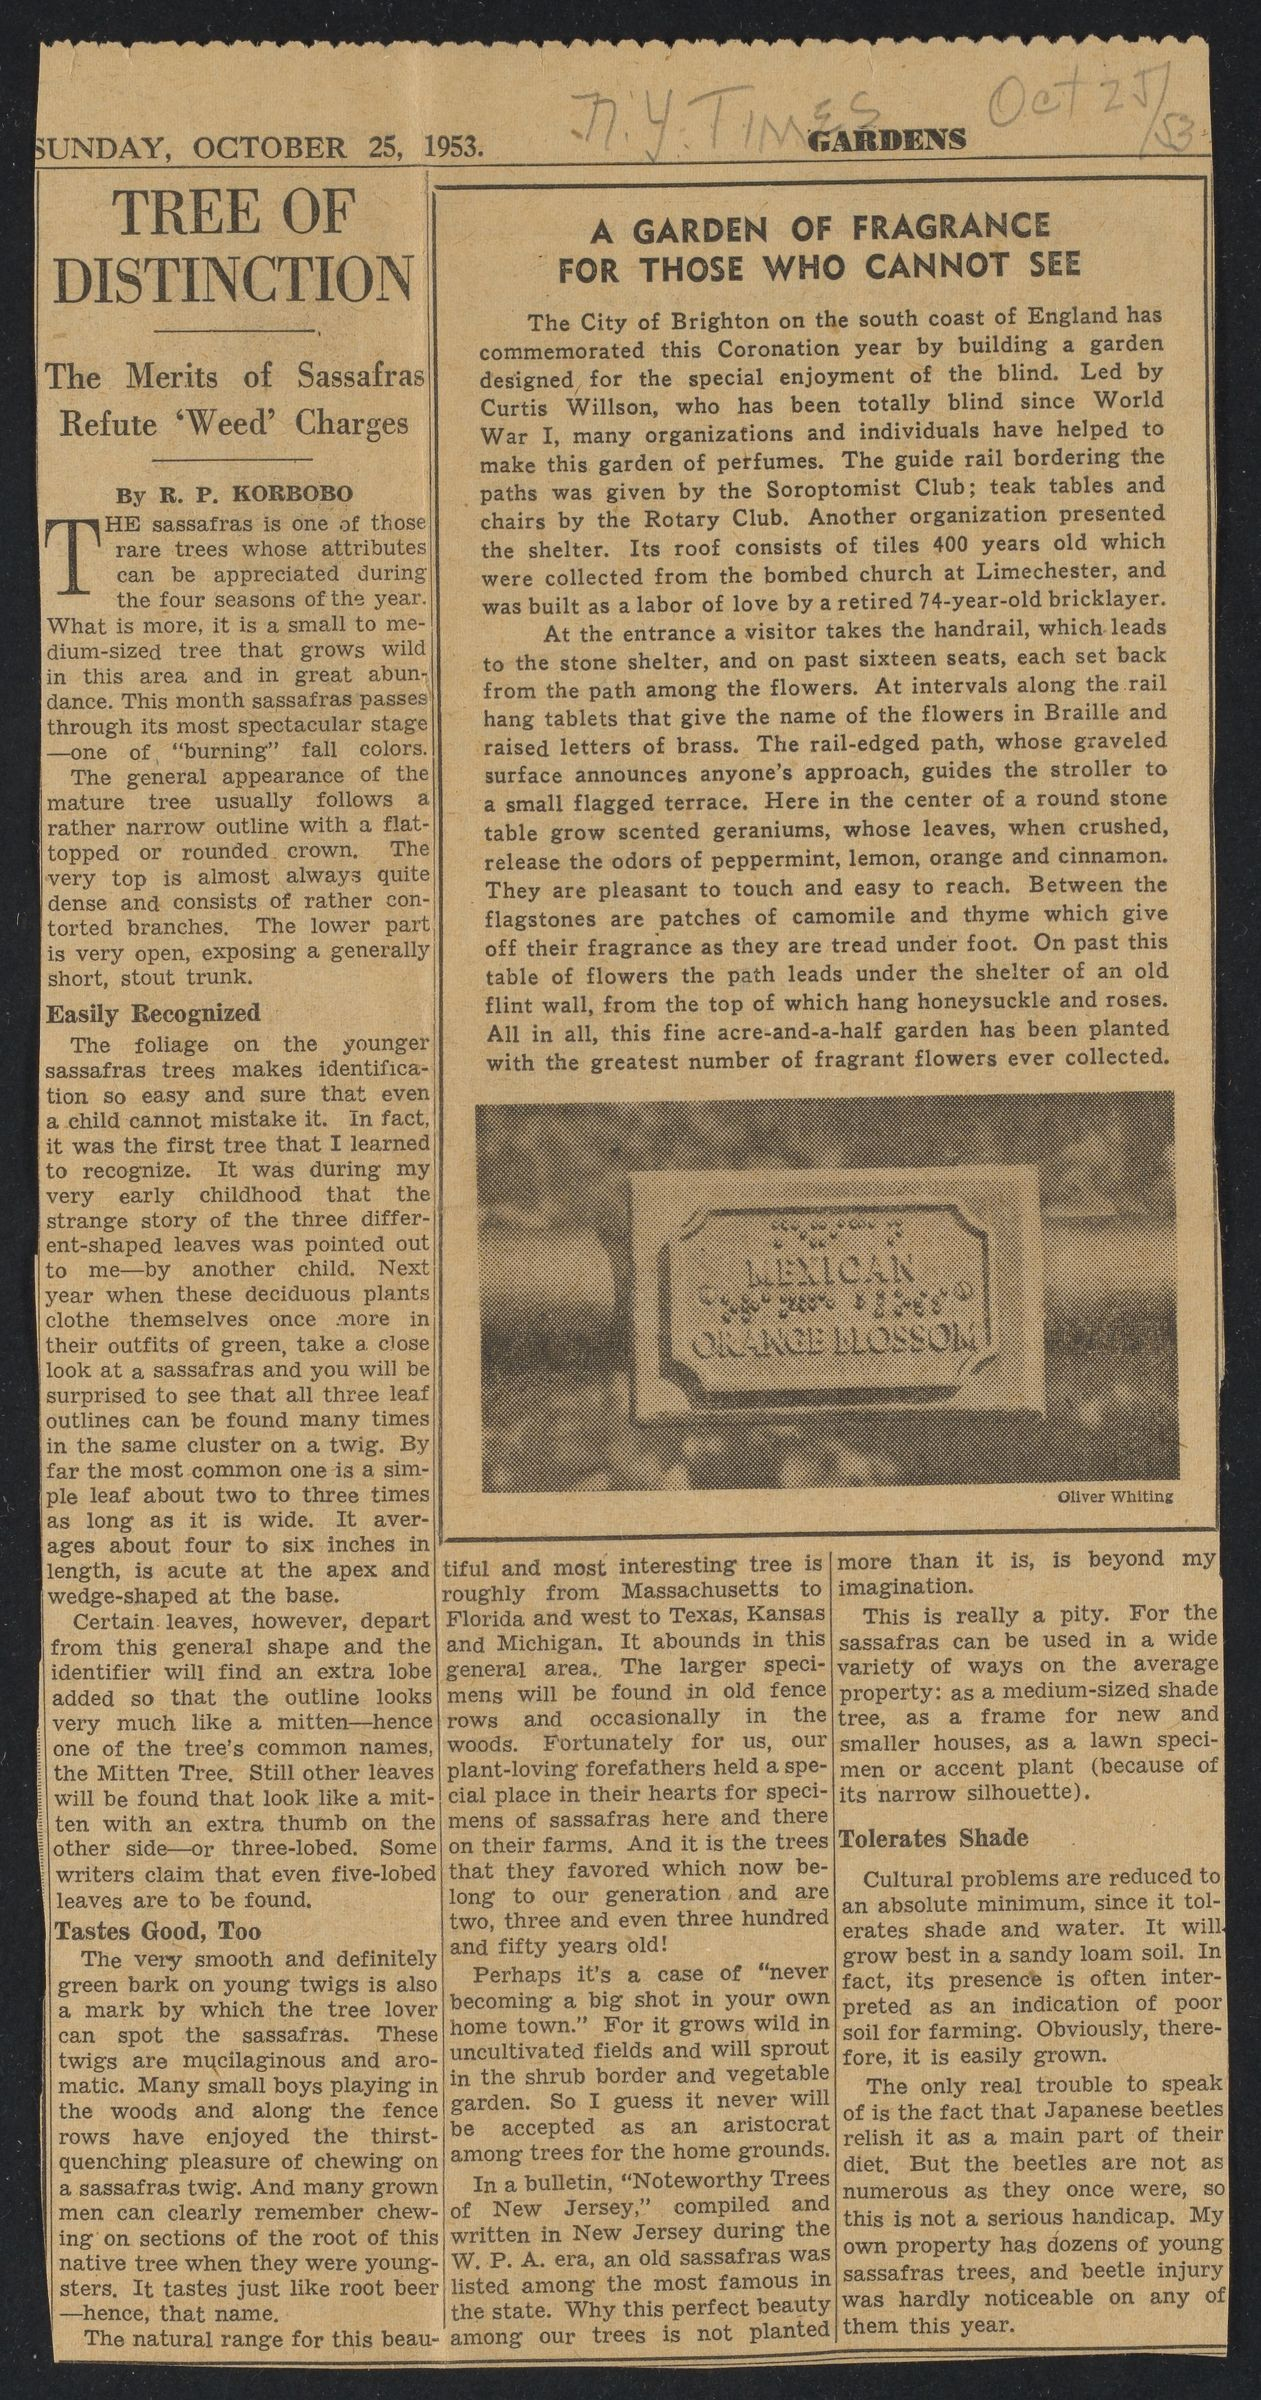 """Newspaper clipping """"A Garden of Fragrance for Those Who Cannot See"""" published in N.Y. Times, October 25, 1953"""